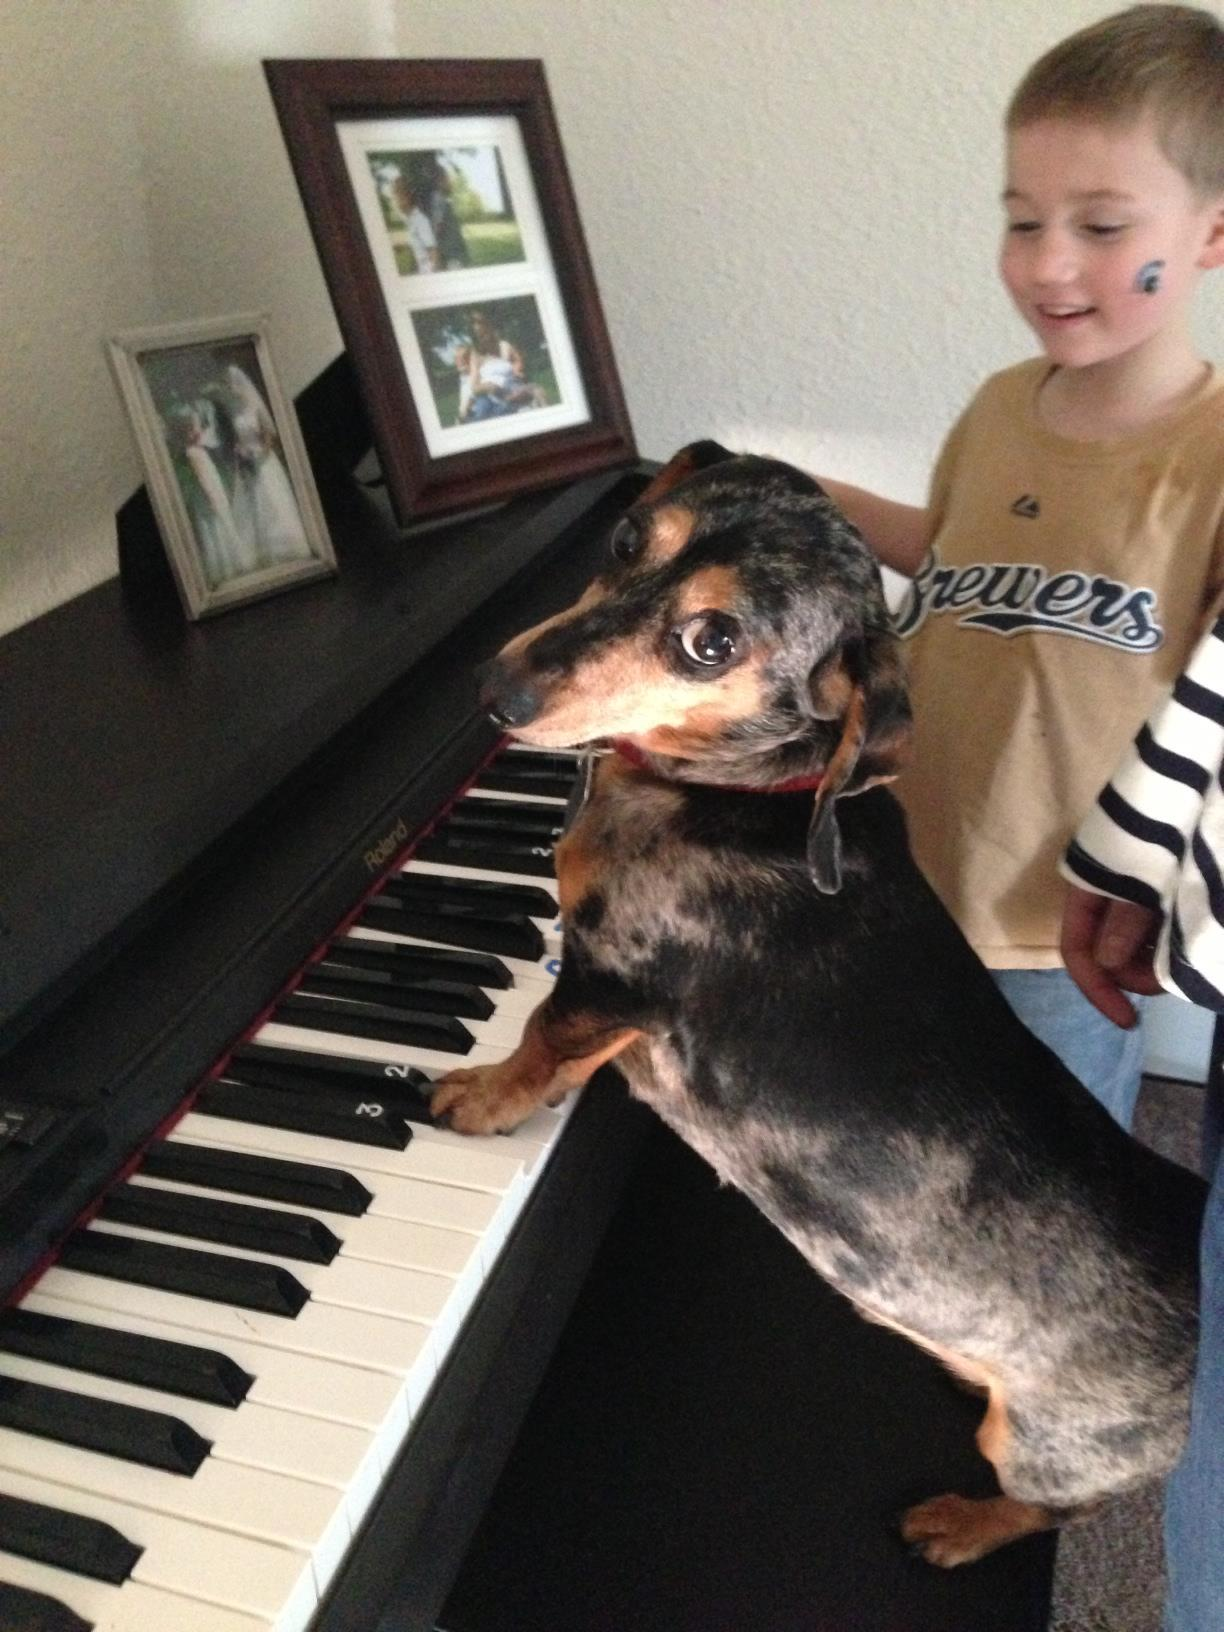 "thefluffingtonpost:  Dog's Piano Lesson Biz Is Booming A Chicago, IL pup named Dudley was finally able to quit his day job as an insurance consultant thanks to a spike in appointments for his side business — teaching piano out of his home. ""He was featured in the Arts section of the Chicago Sun Times,"" says neighbor Stephanie Clarmont. ""Since then, there have been kids and adults coming in and out for hour-long sessions. Seems like business is great for him."" Submitted by Leah Phillips.  That's my Dud!Seriously. That's my dog."